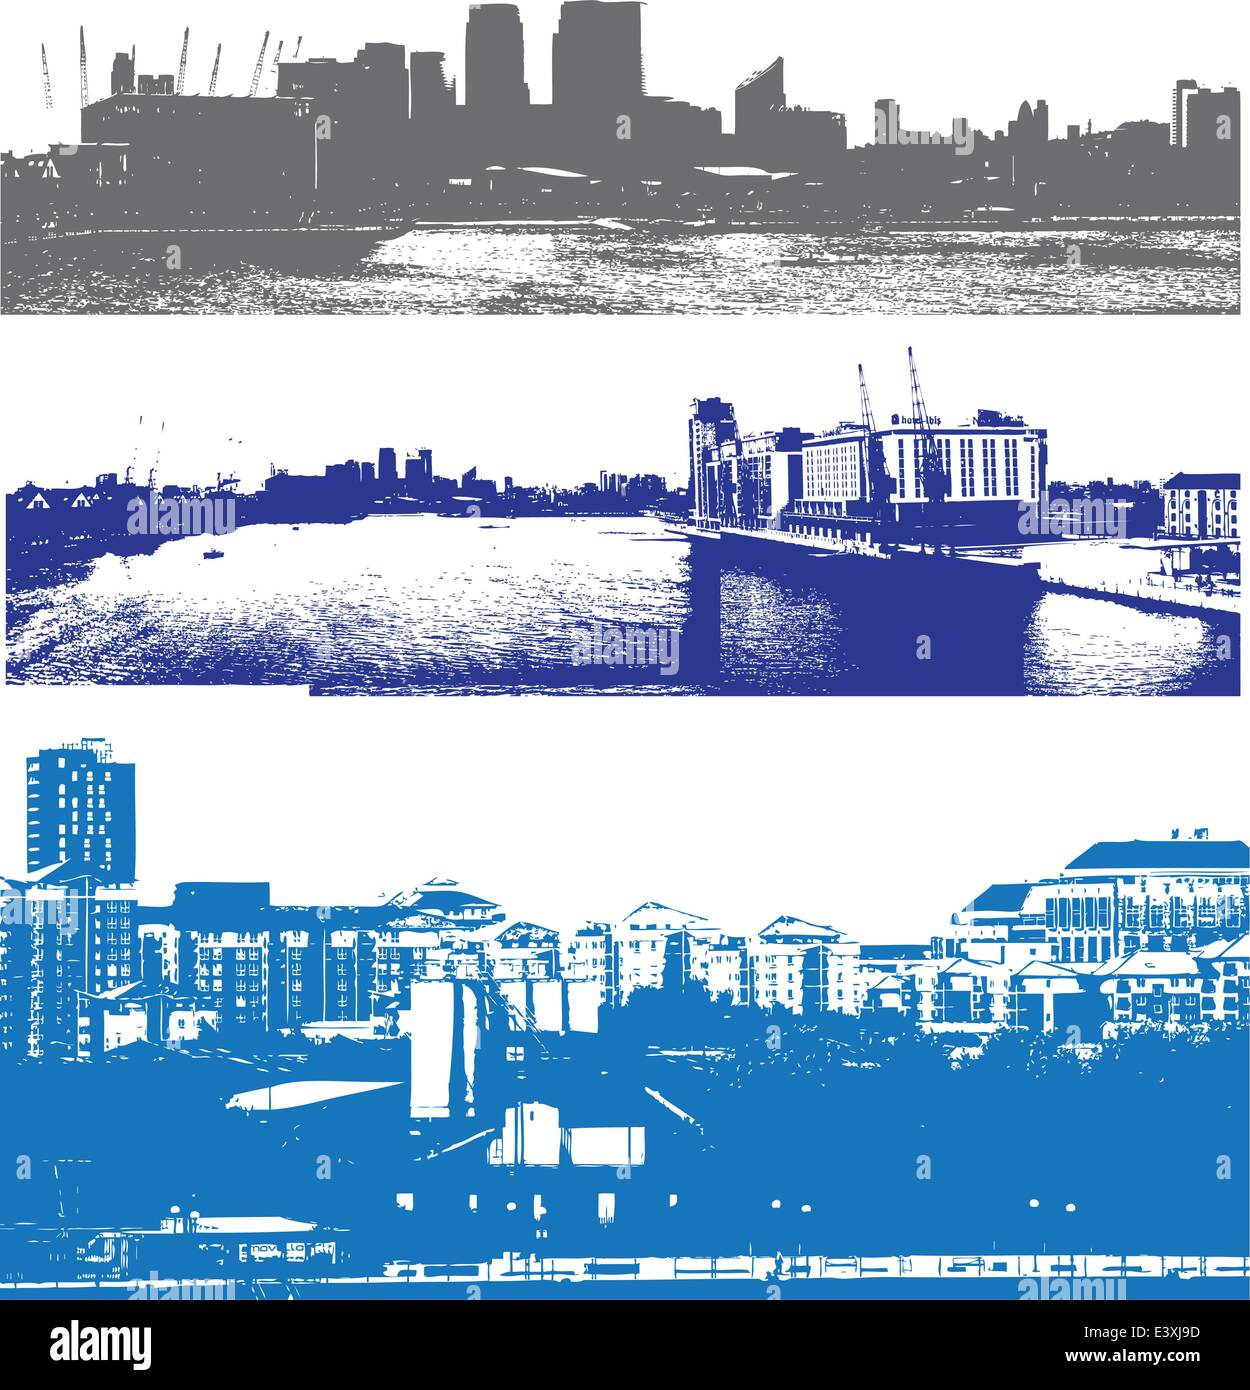 London skyline as viewed from the docklands in a grunge urban style - Stock Vector